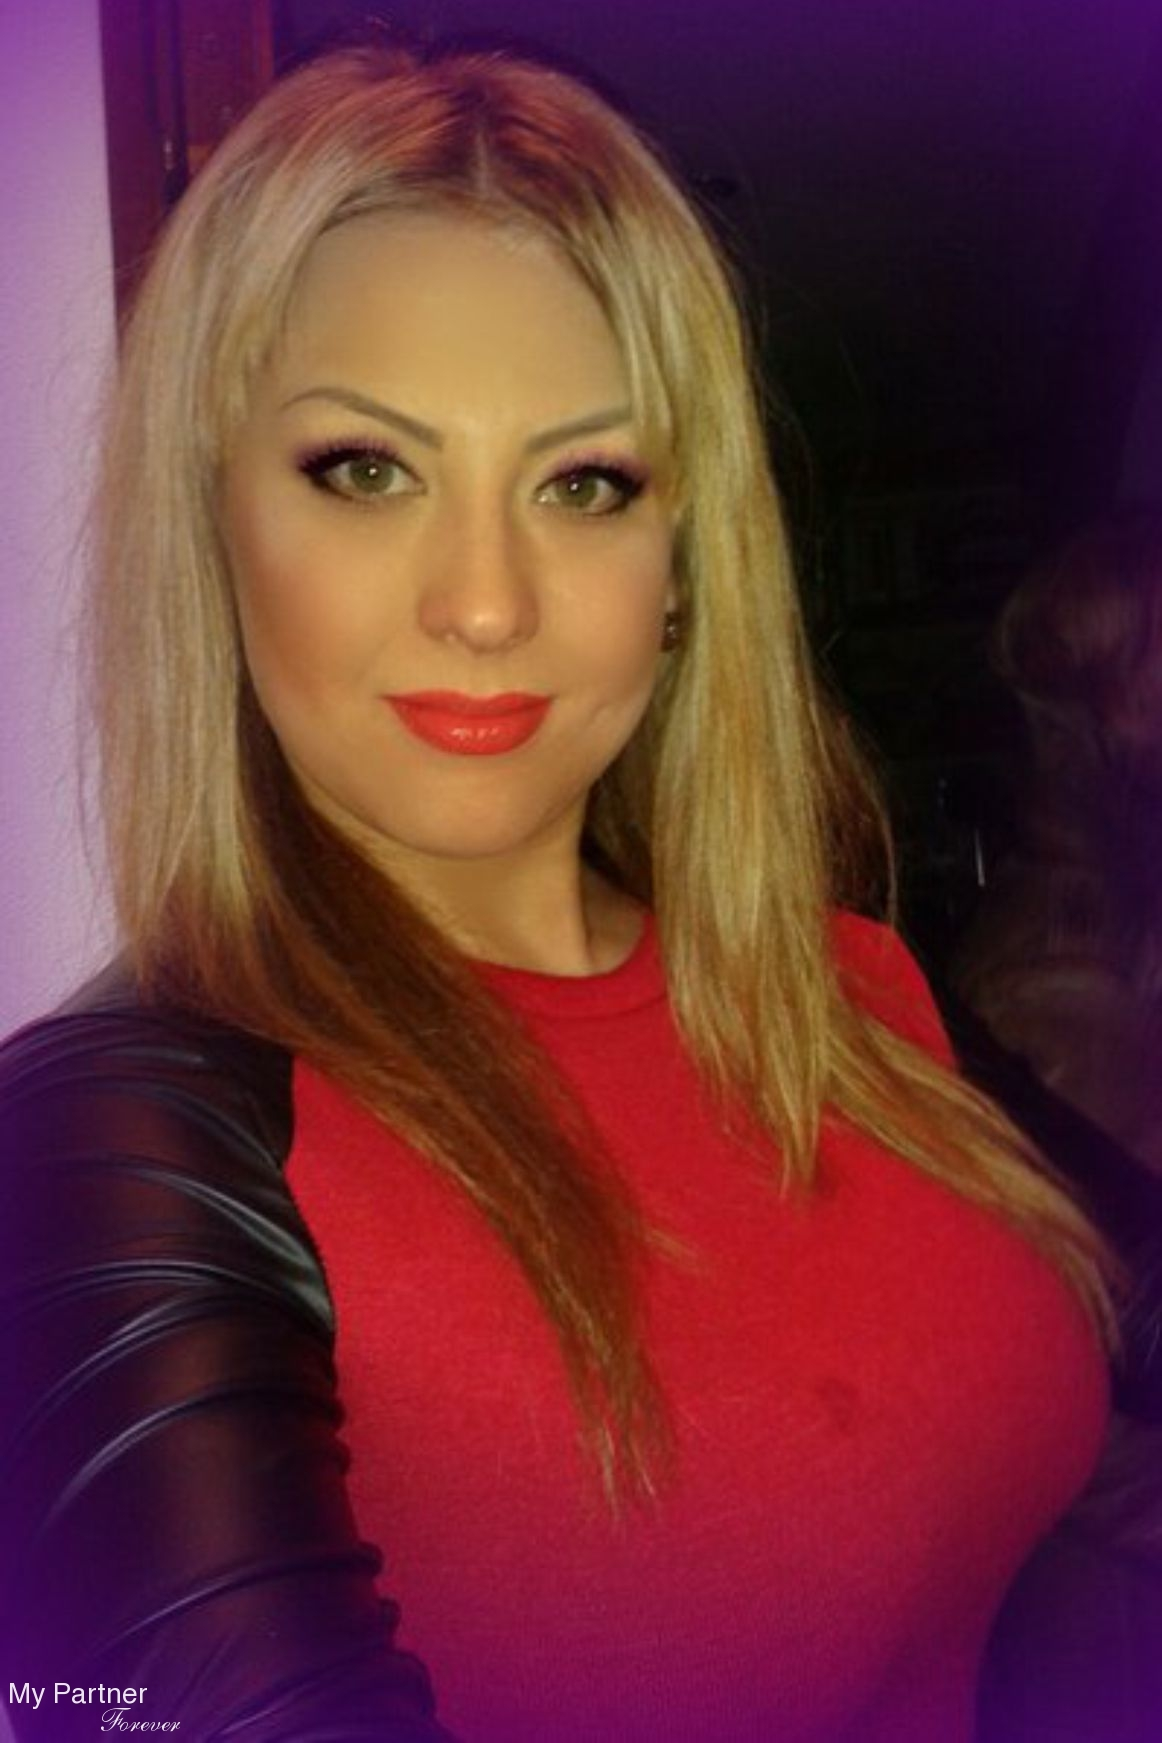 fulks run latina women dating site Meet catholic singles in harrisonburg, virginia online & connect in the chat rooms dhu is a 100% free dating site to find single catholics.